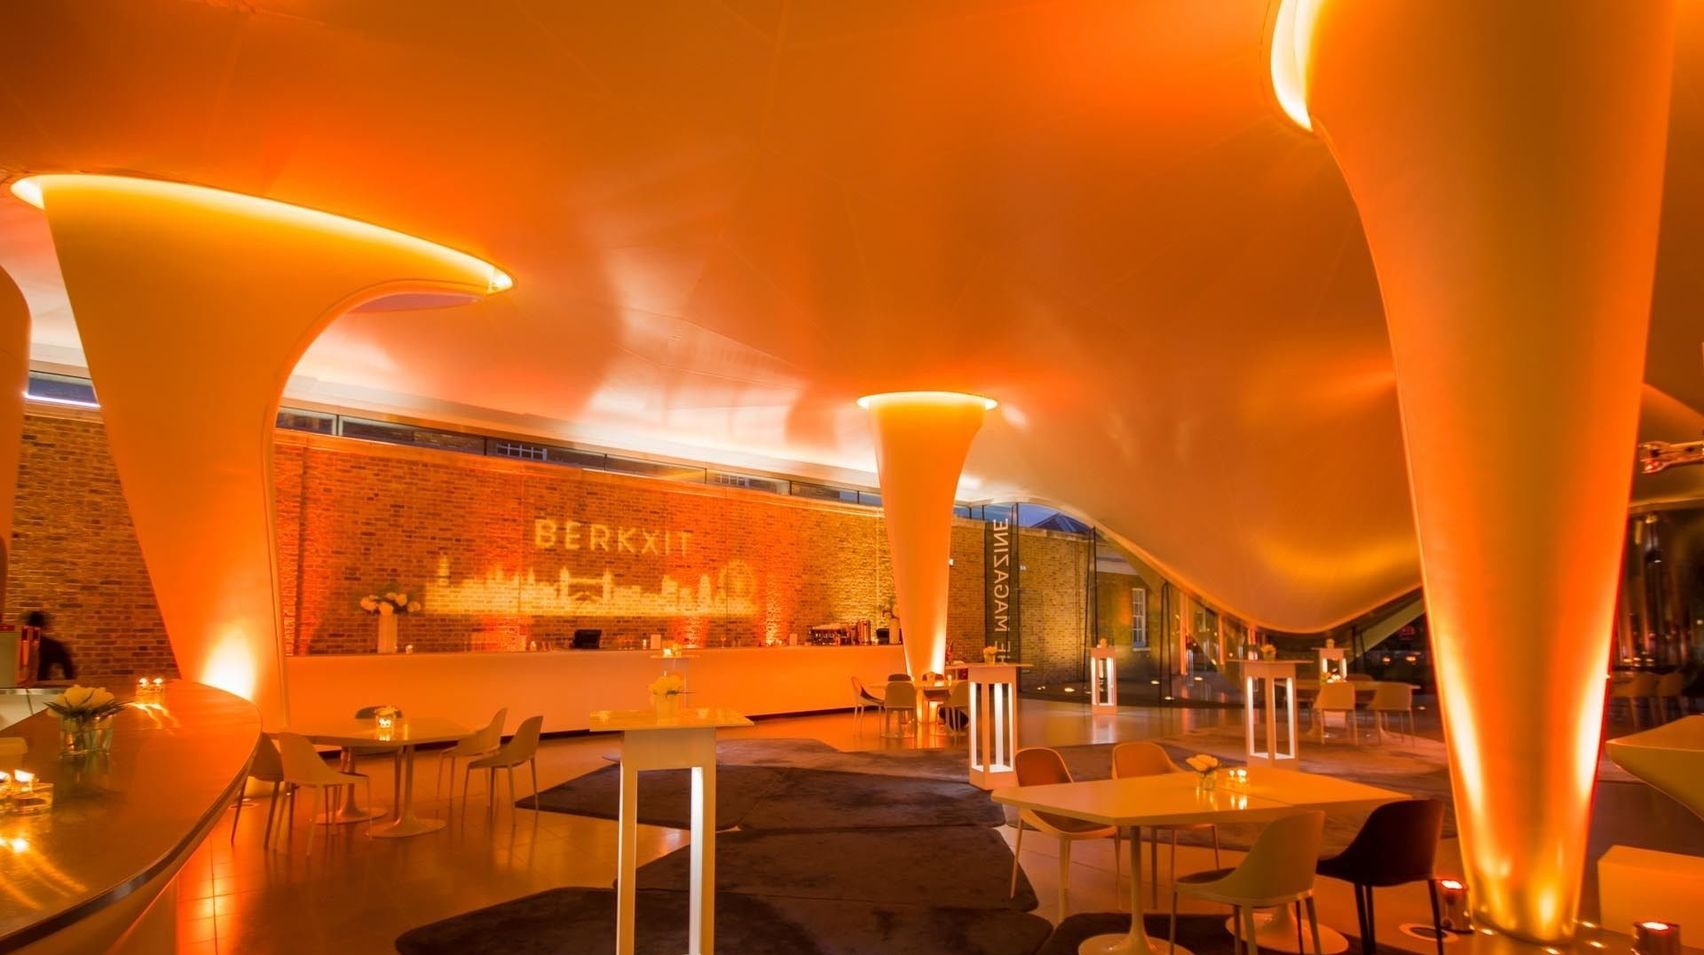 Serpentine Gallereis is an unusual Christmas party venue in London. With curved yellow and orange ceiling